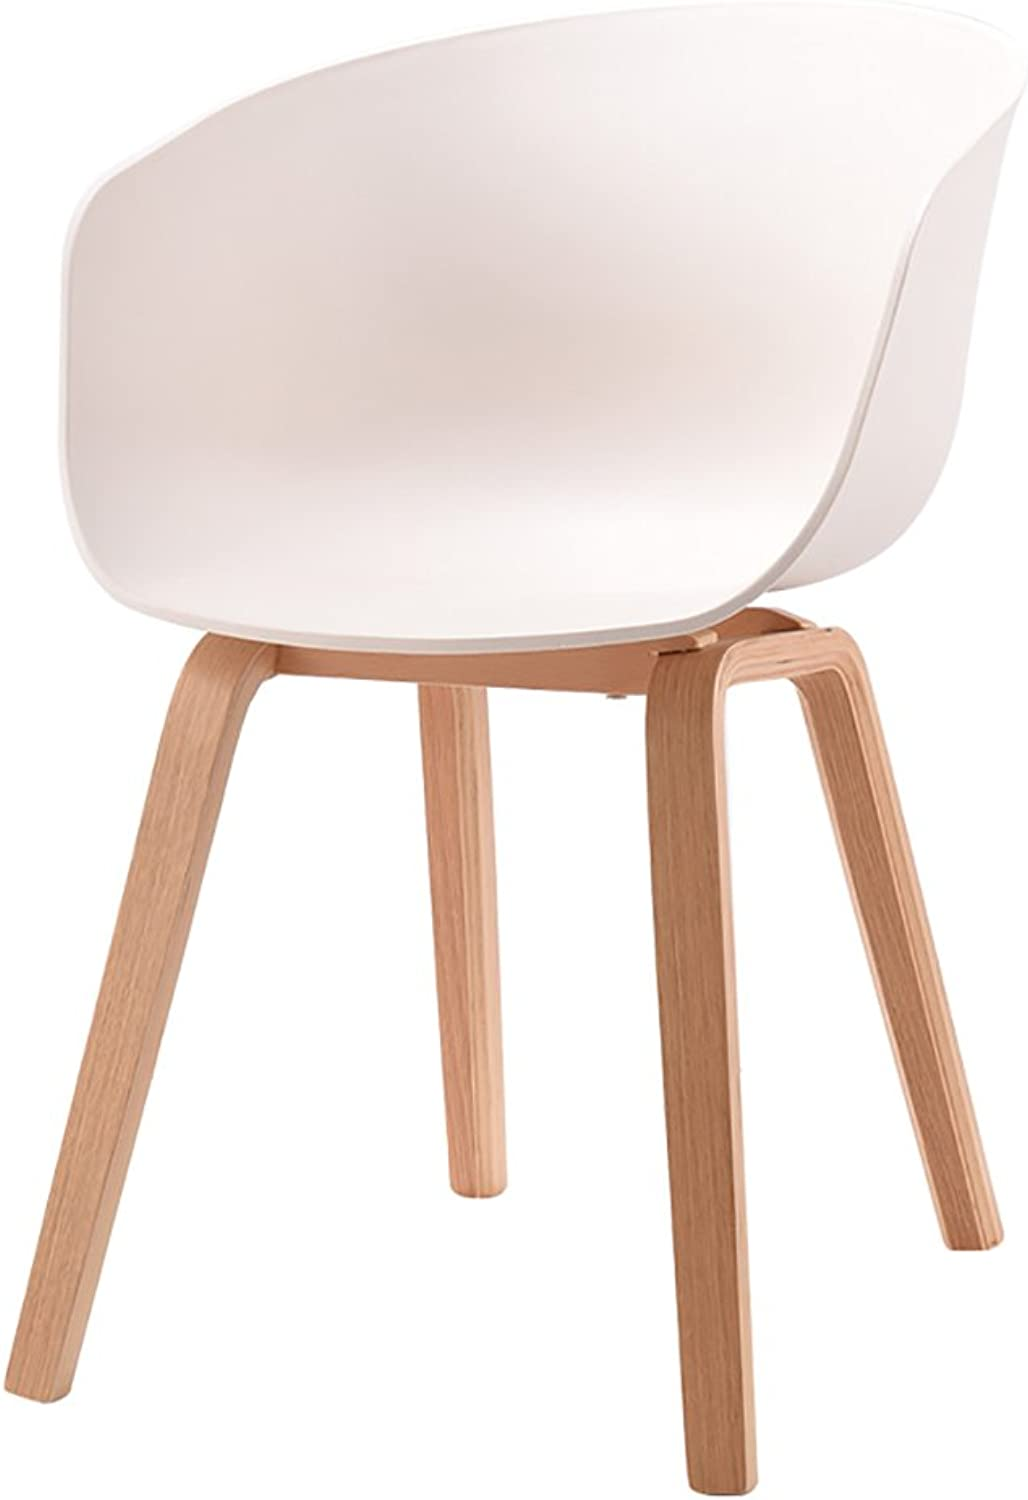 ALUS- Designer Chair Armchair Tripod Bent Wood Panton Designer PP Chair (color   White, Size   H75cm)